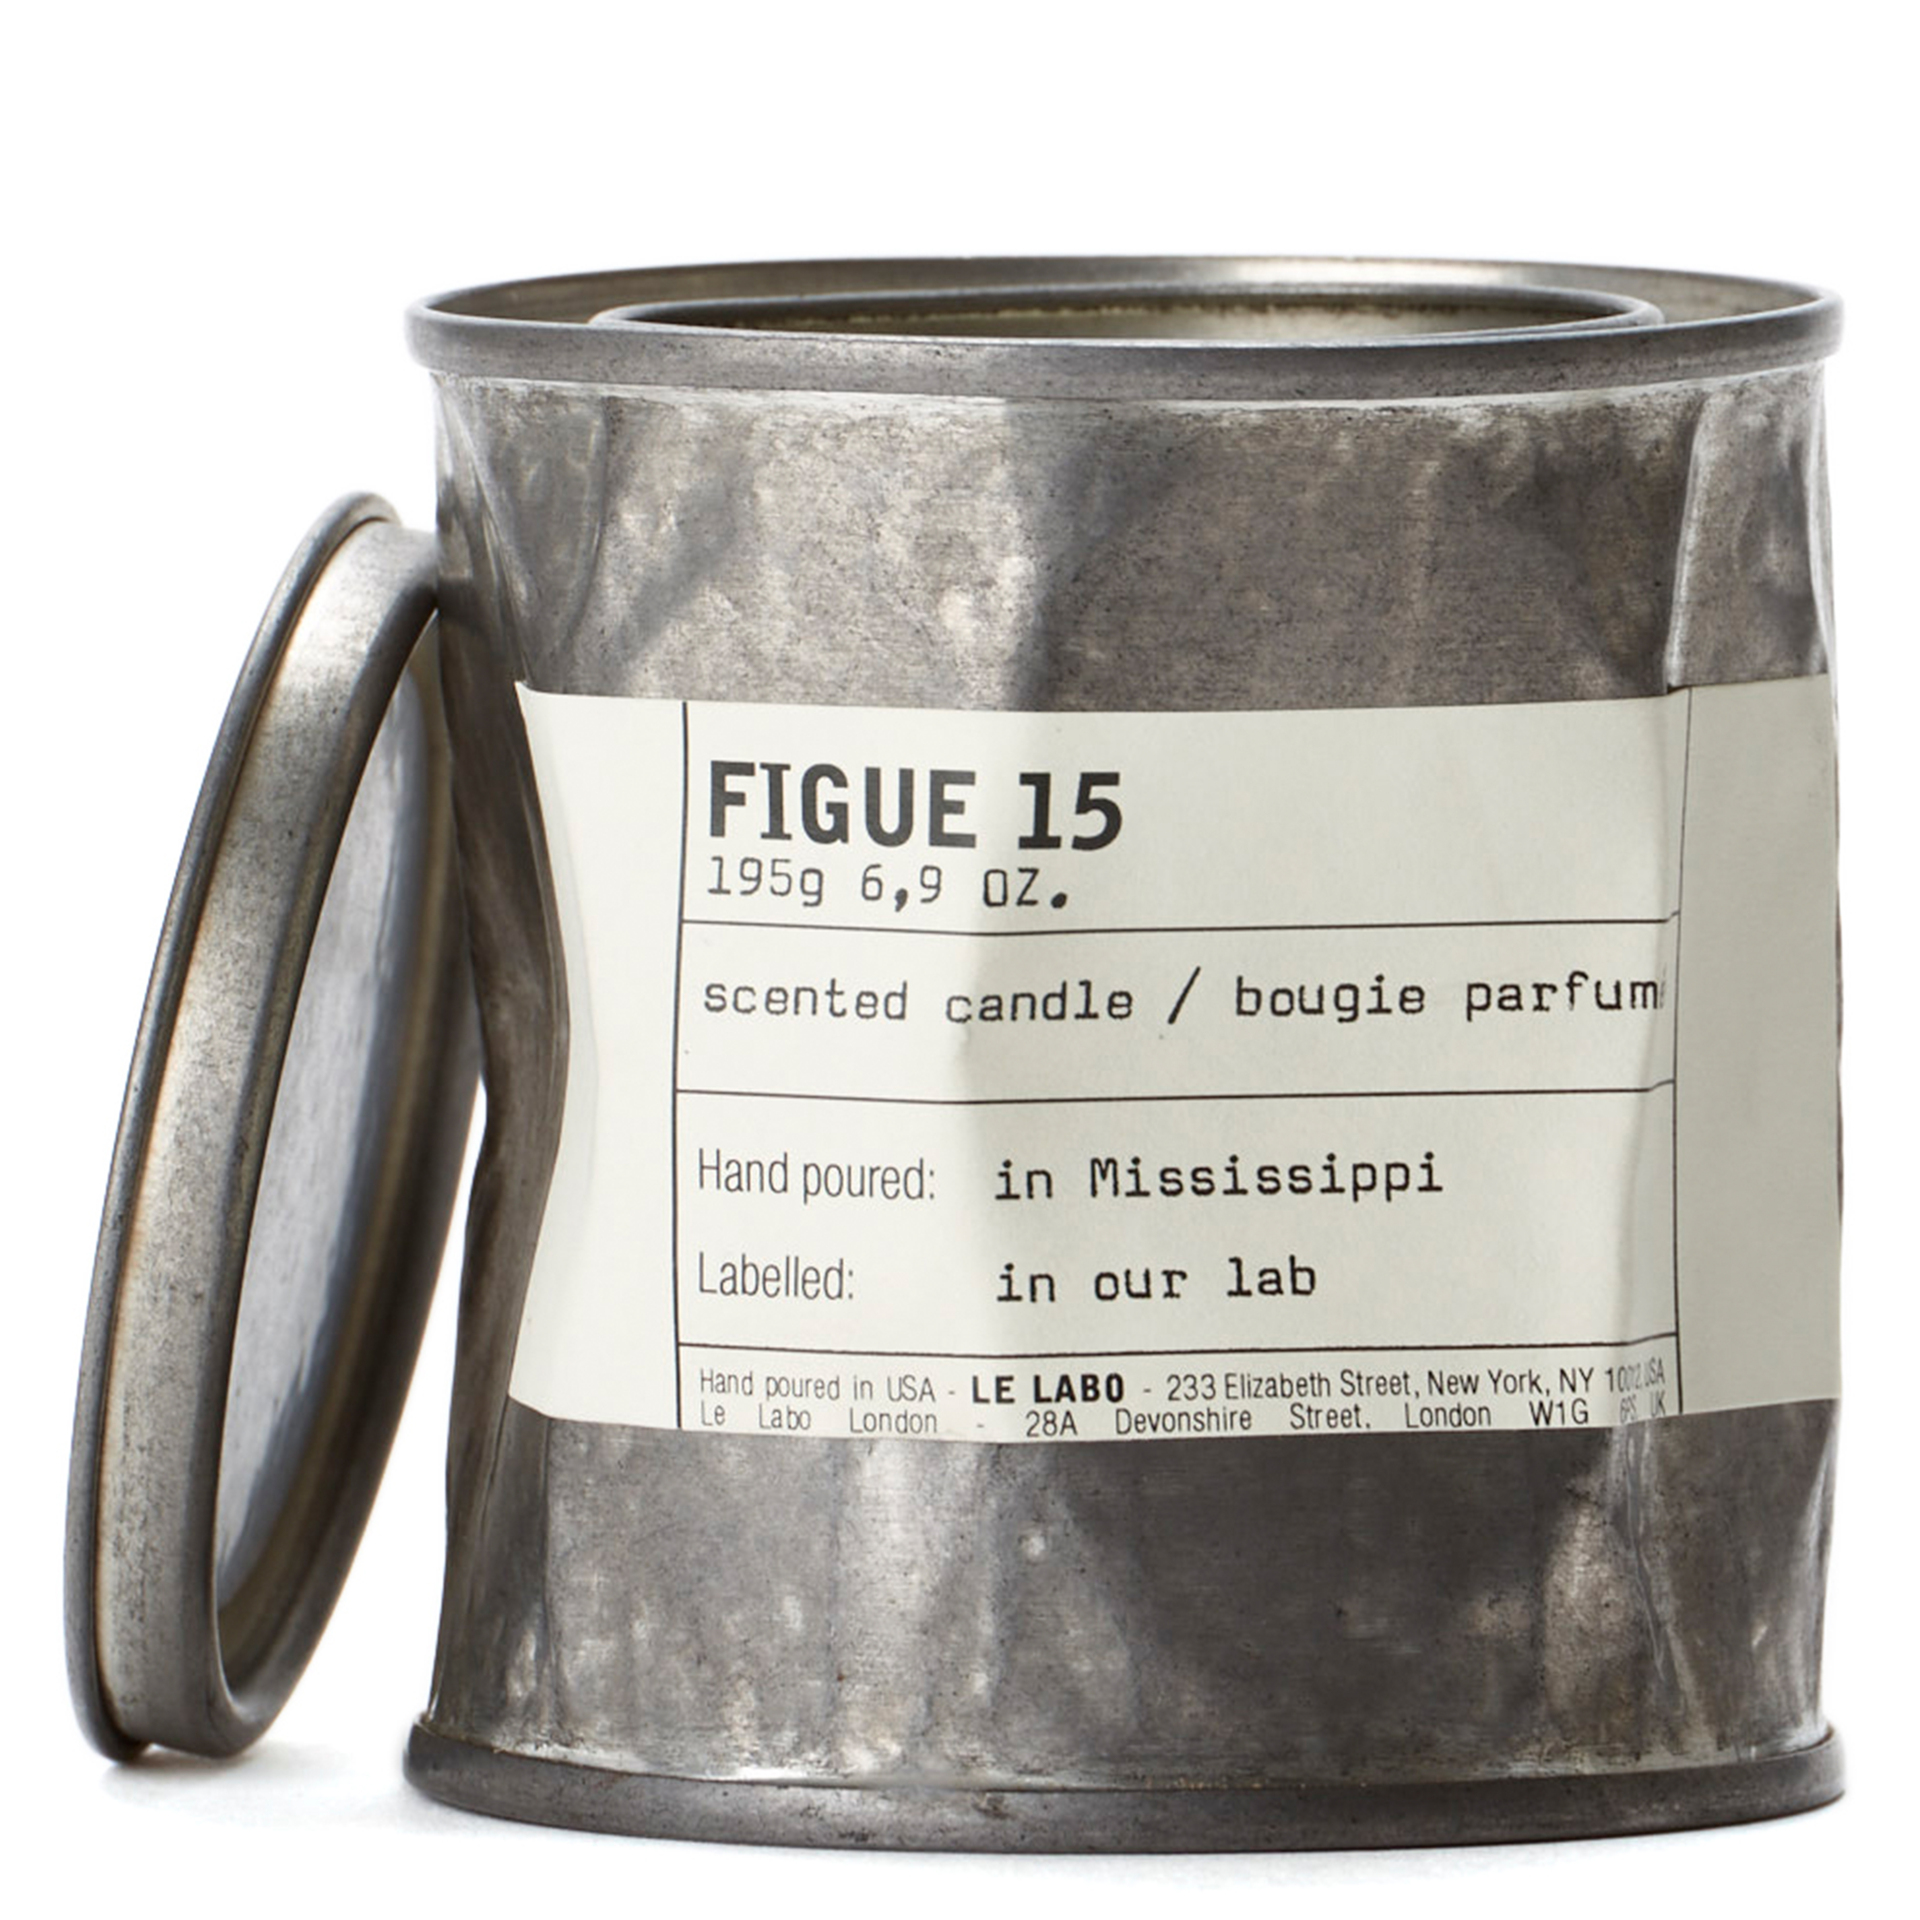 Figue 15 - Vintage Candle